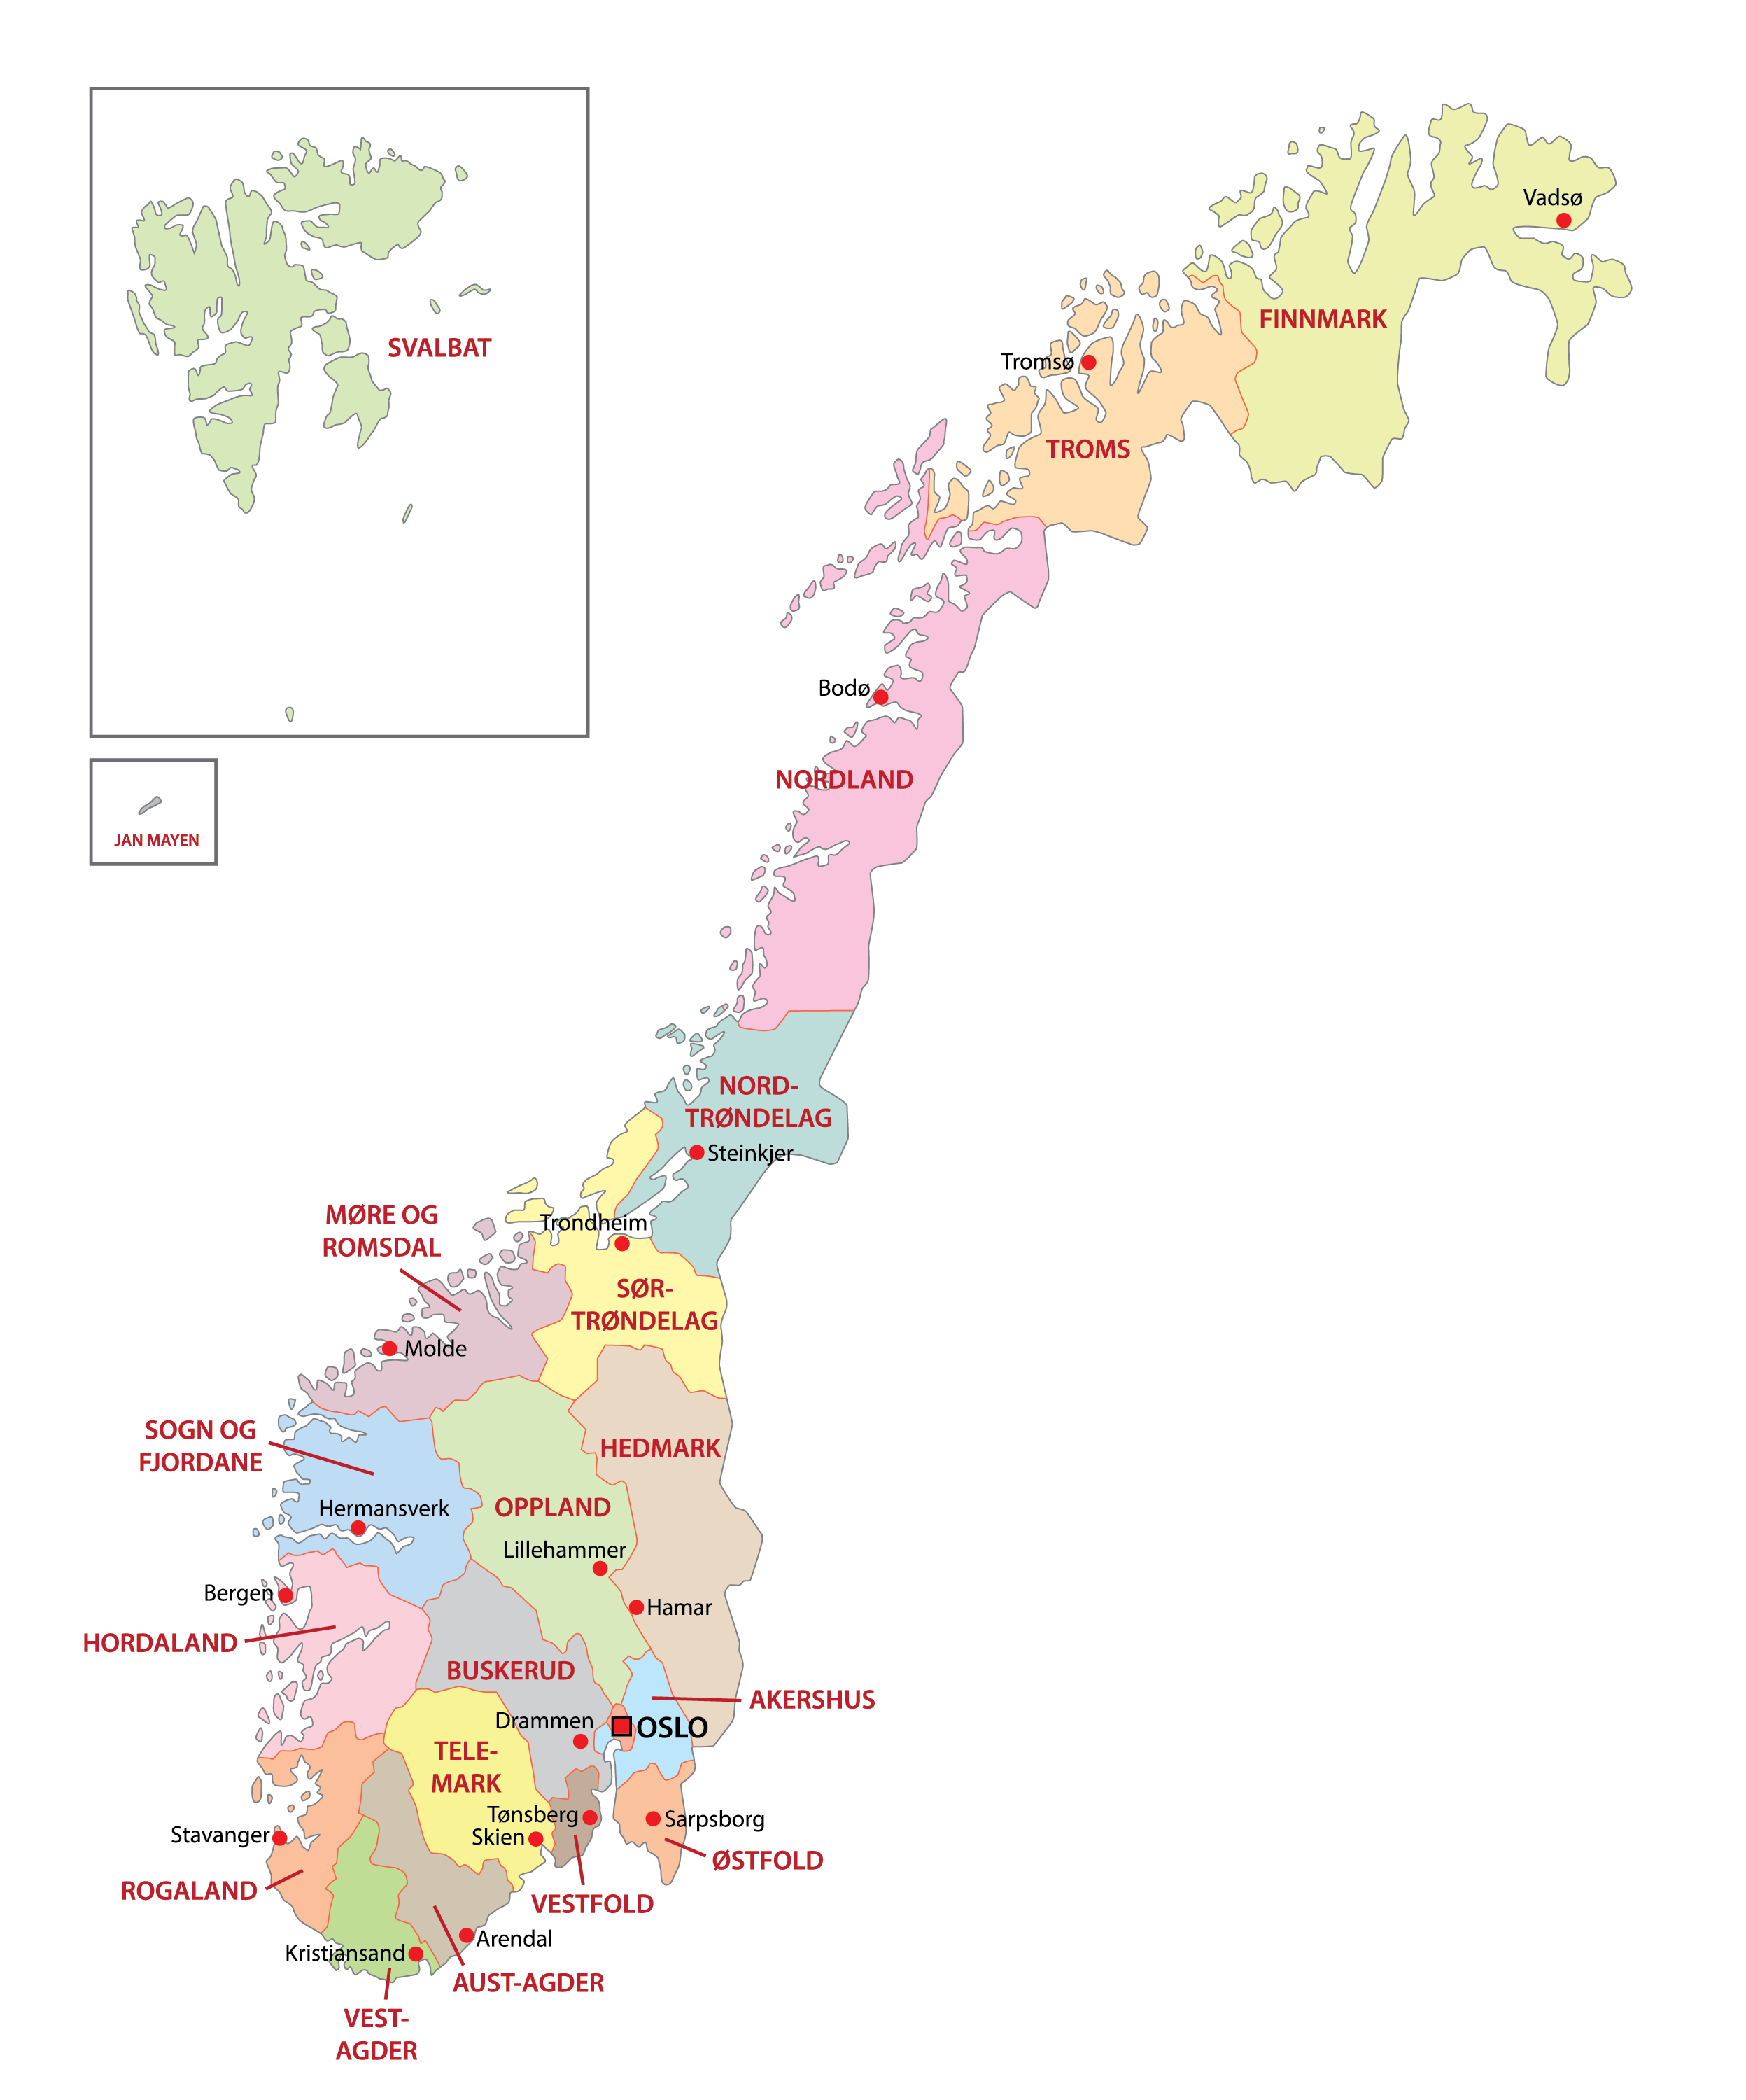 Political Map of Norway showing its 11 regions and the capital city of Oslo.